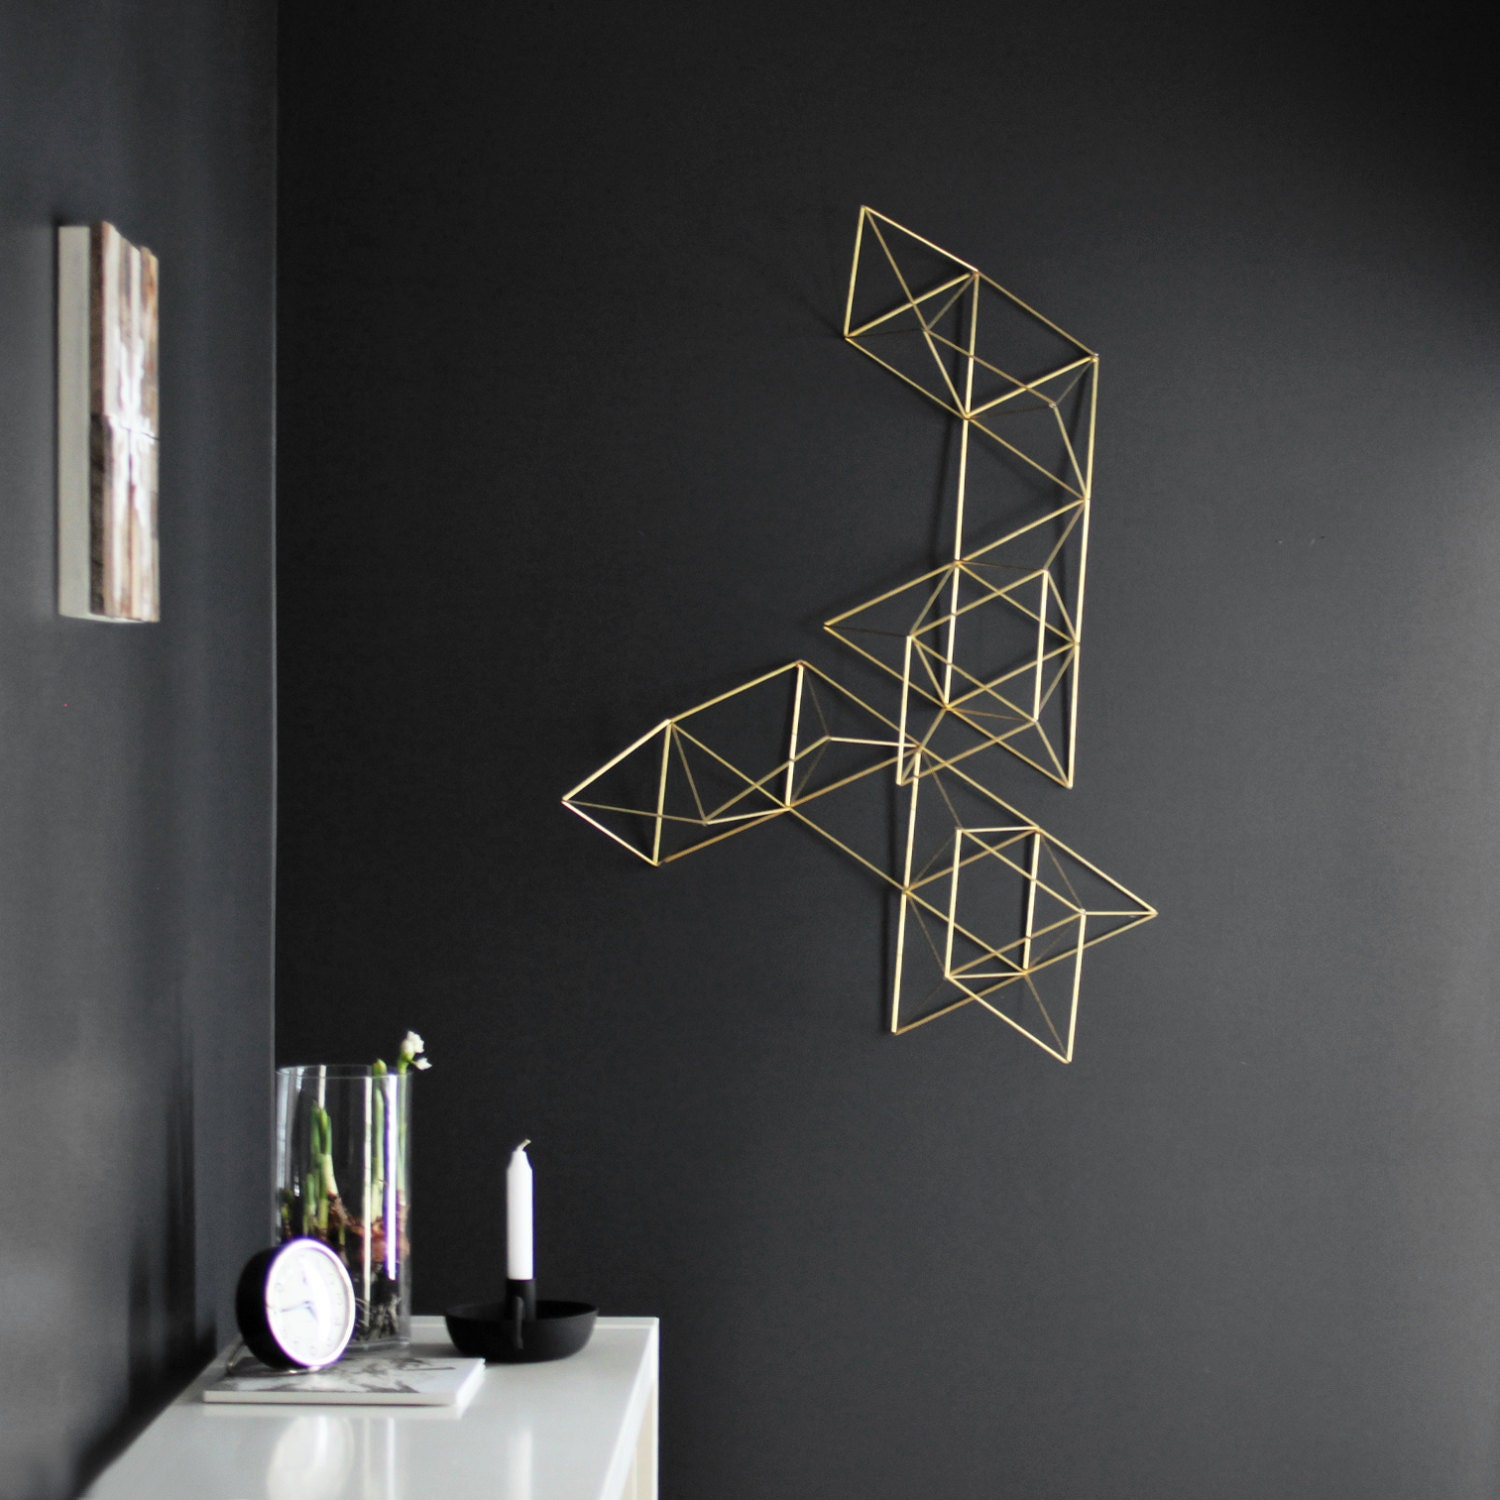 Geometric Design Wall Art : Large brass abstract himmeli no wall sculpture